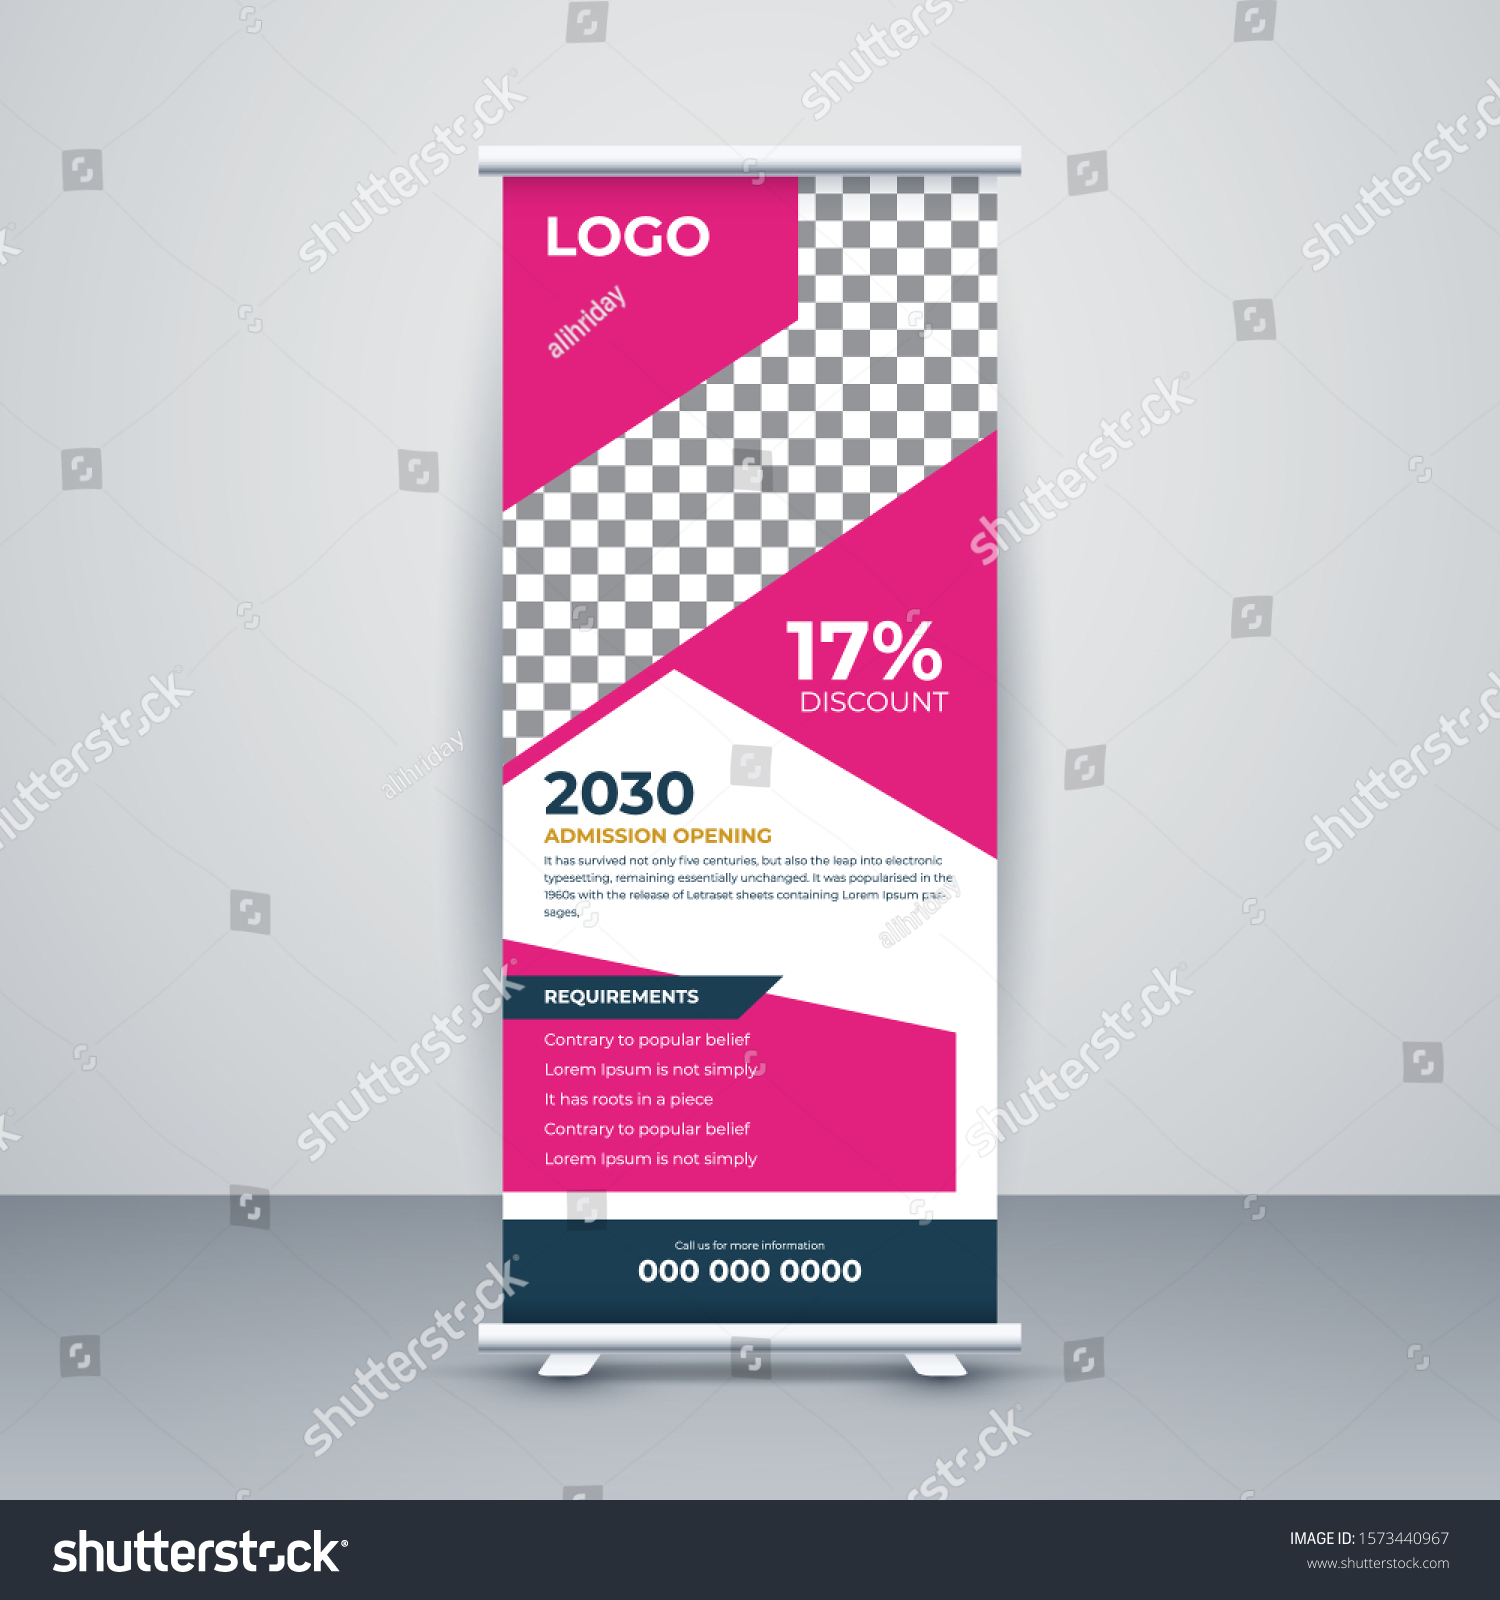 Education Roll Banner Stand Template Creative Stock Vector Royalty Free 1573440967